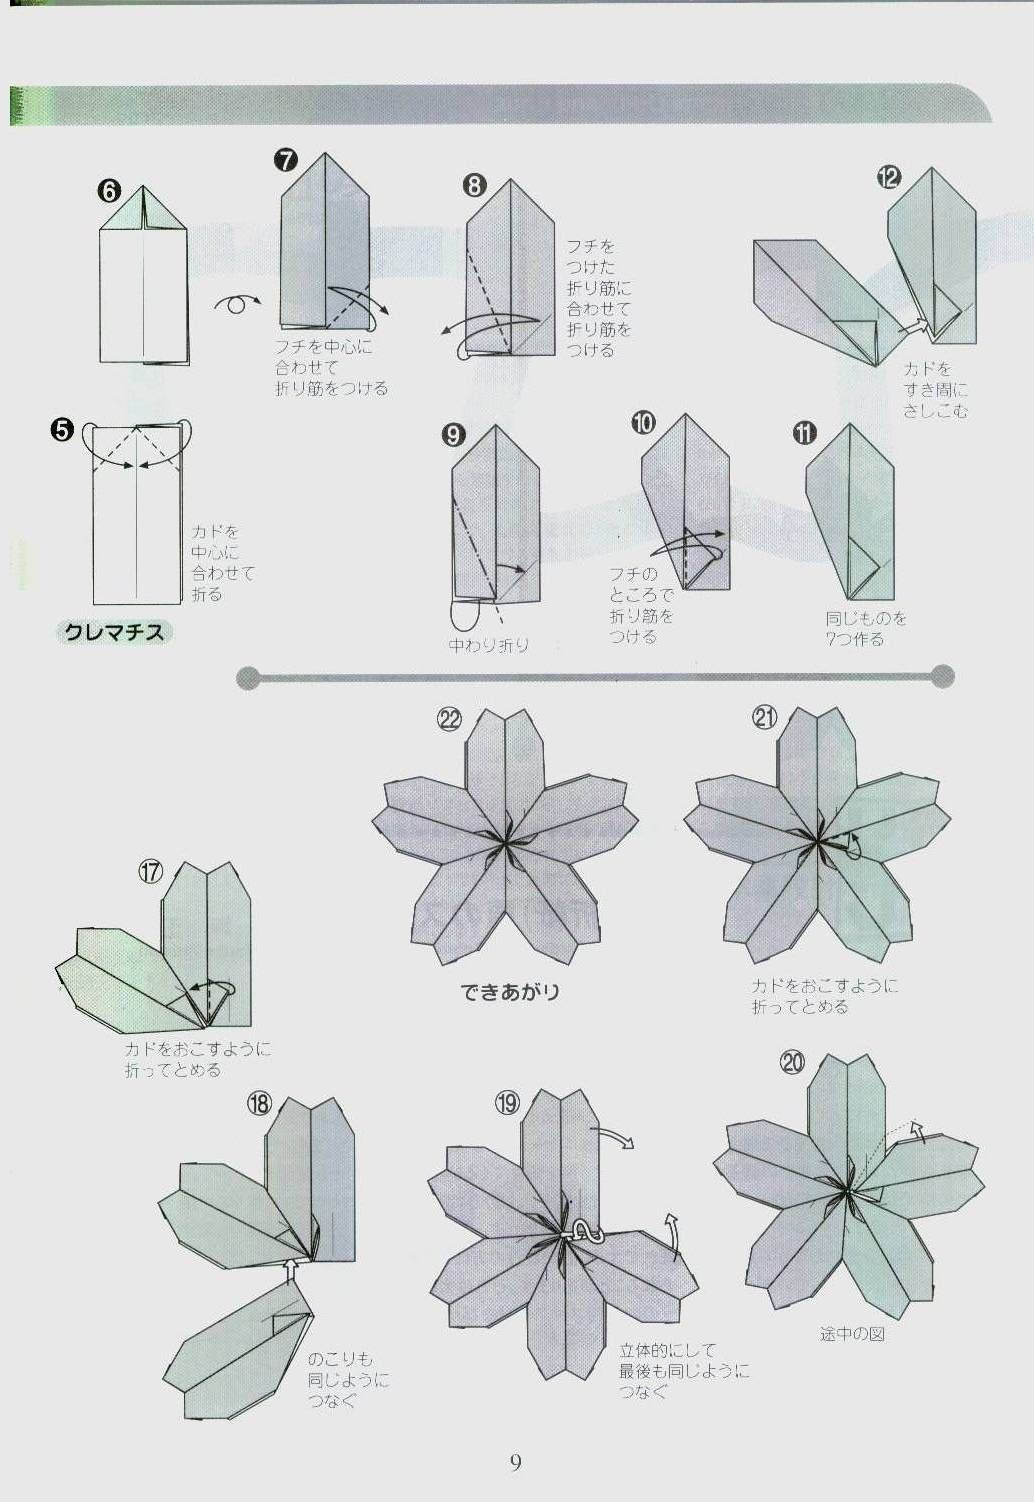 rare origami cherry blossom diagram download paper kawaii [ 1034 x 1502 Pixel ]